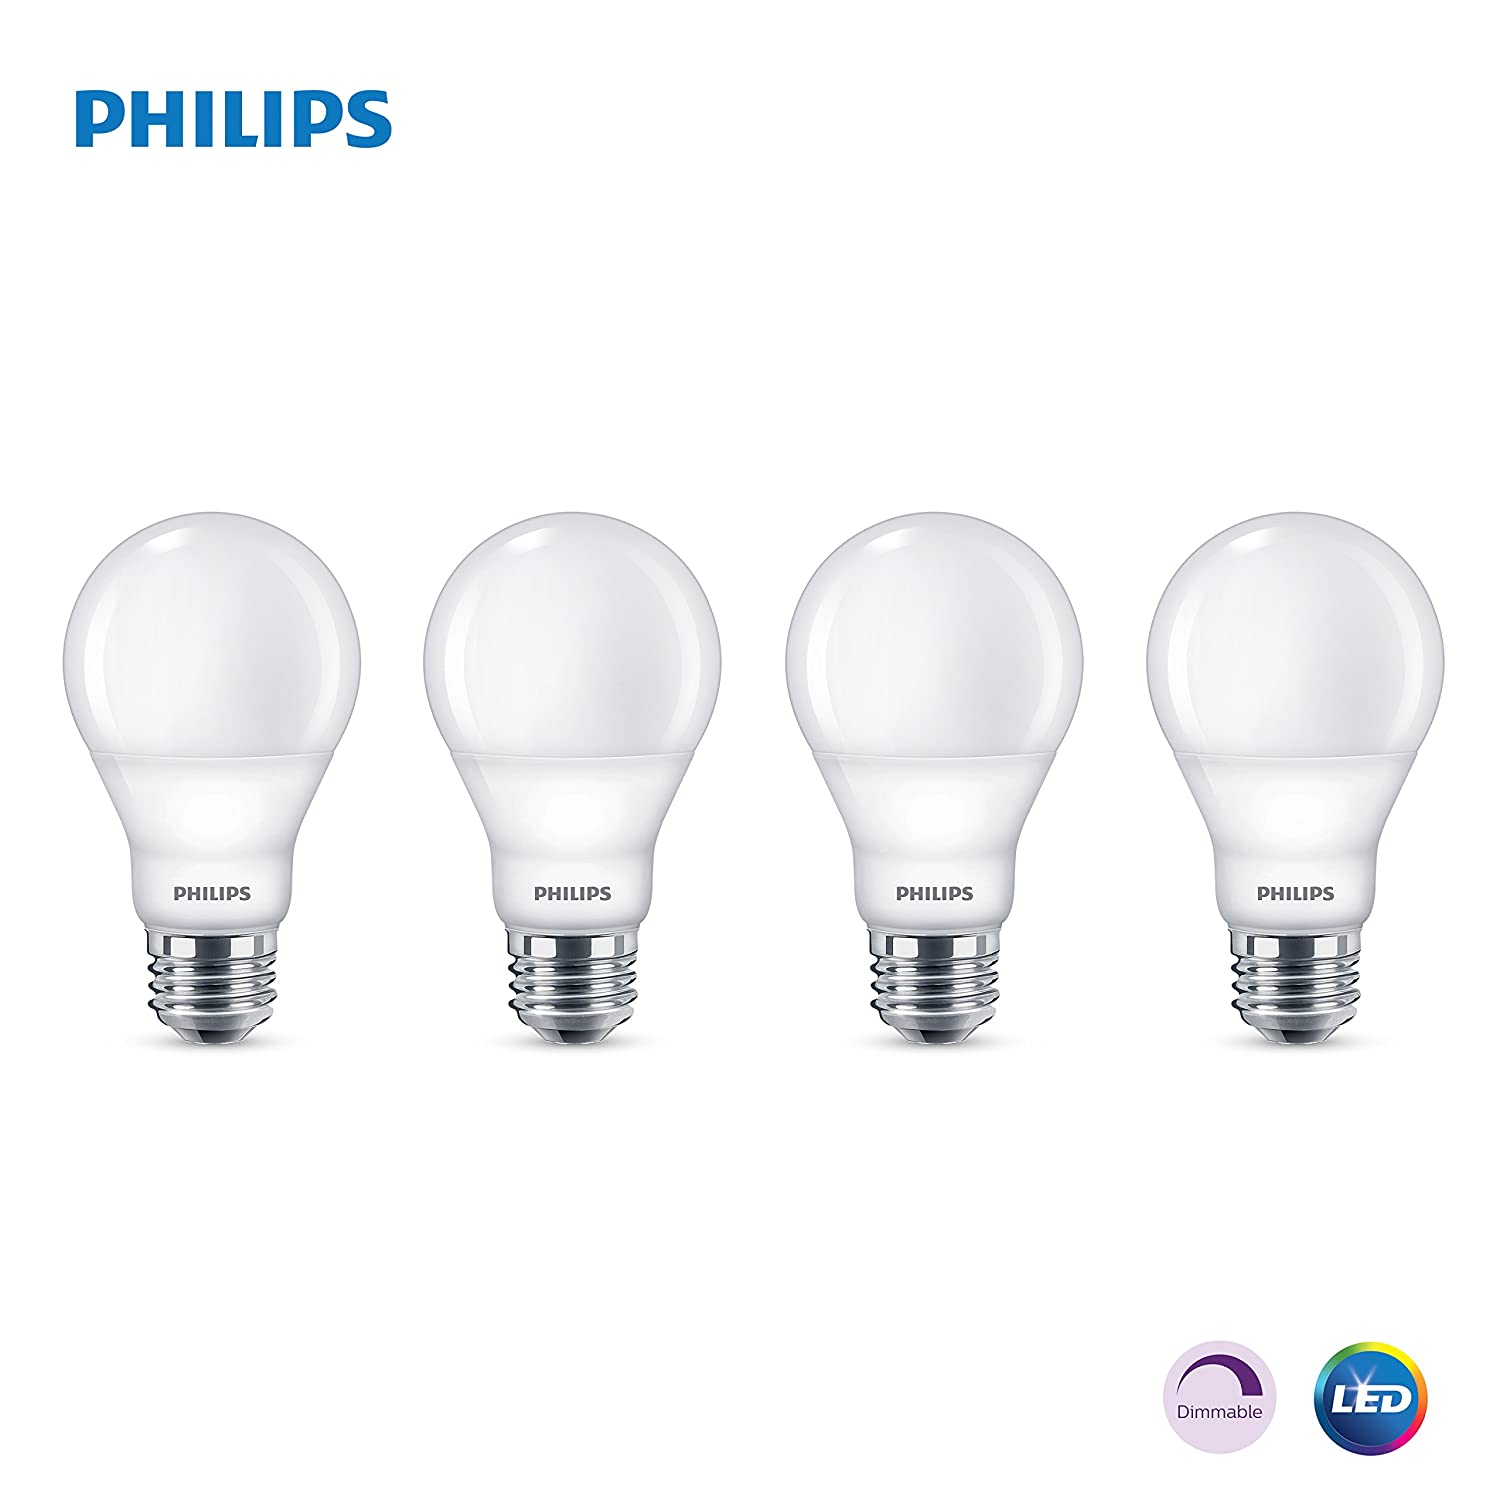 Phillips LED Dimmable A19 Light Bulb with Warm Glow Effect 800 Lumen 2200 2700 Kelvin 9.5 Watt 60 Watt Equivalent E26 Base Frosted Soft White 4 Pack